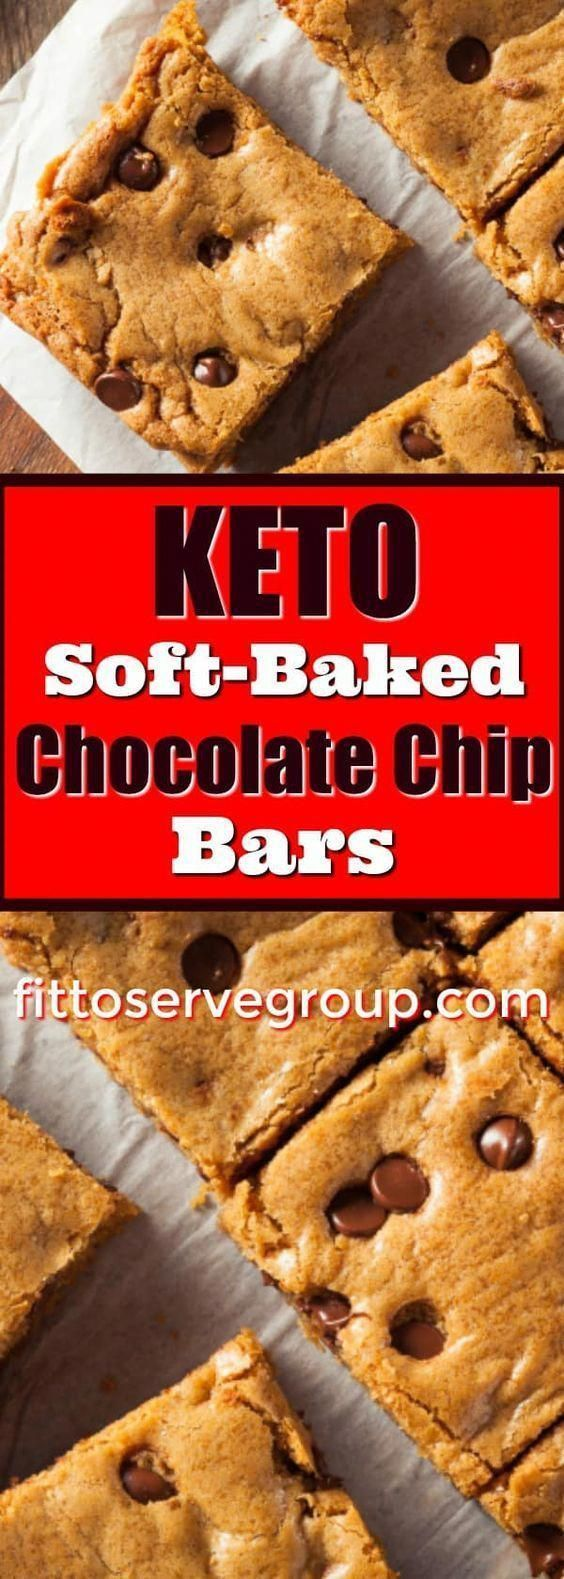 Keto Soft Baked Chocolate Chip Bars. If youre wanting a chocolate chip bar reci - Keto Brownies - I